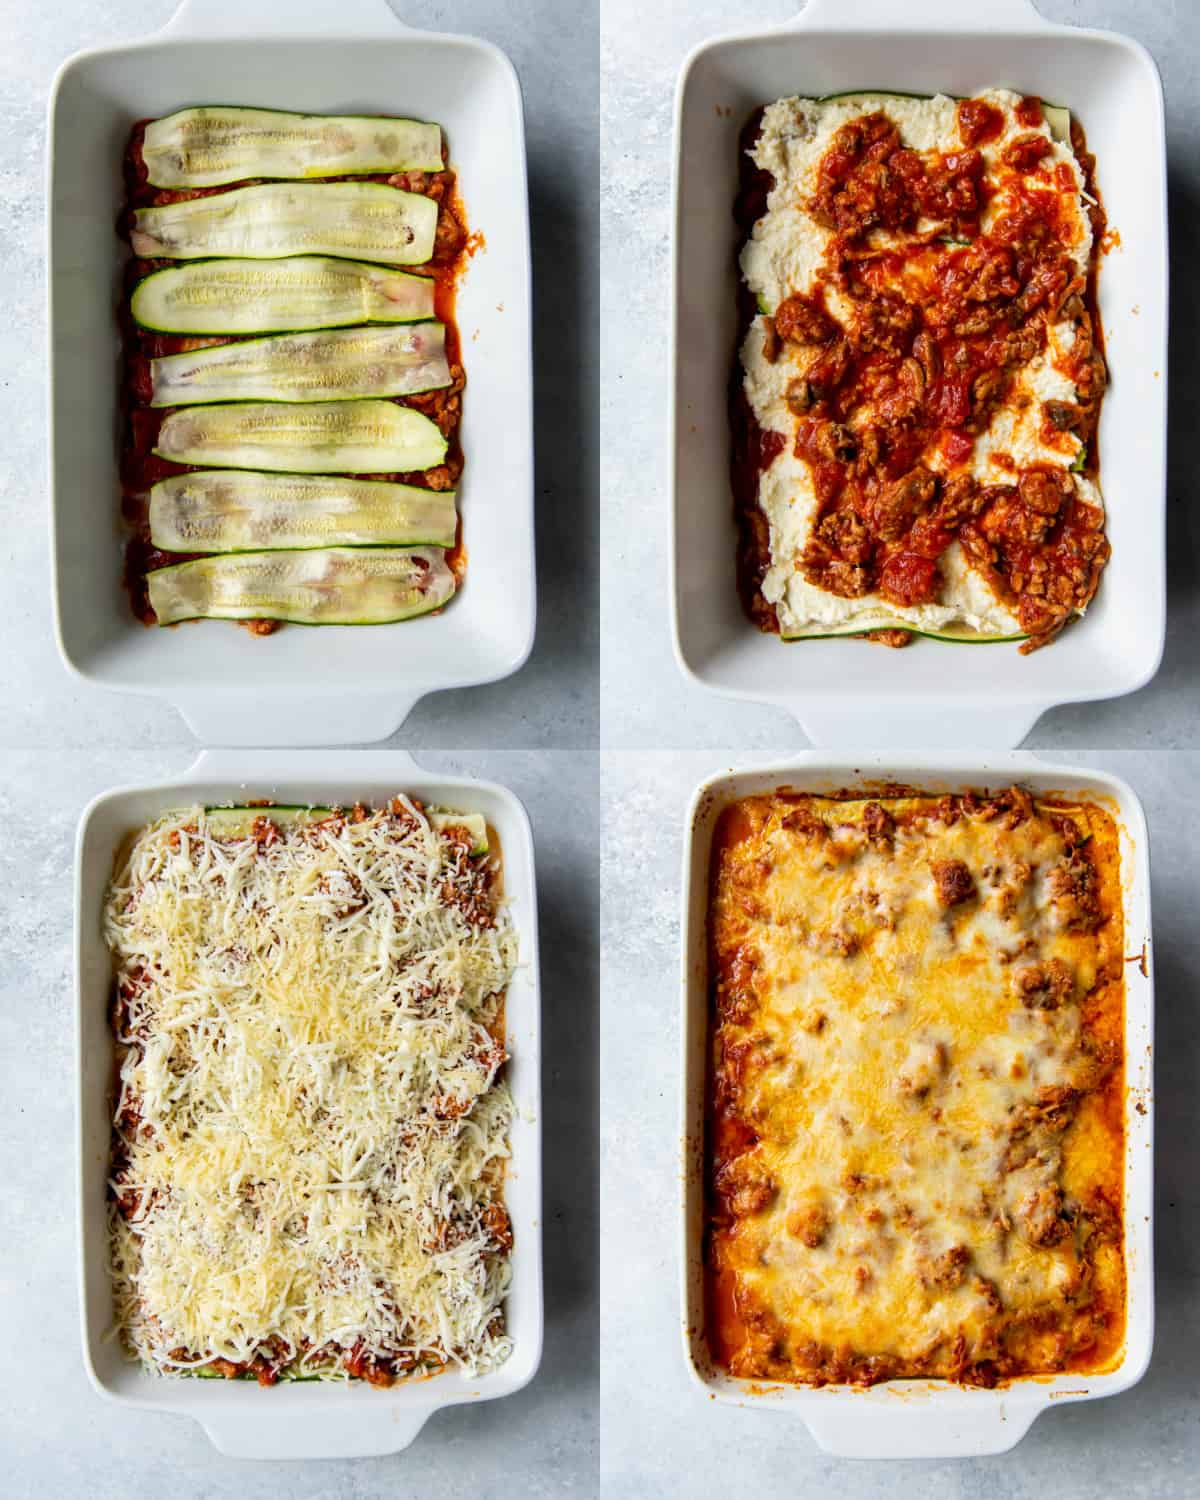 layer all of the ingredients for lasagna in a dish